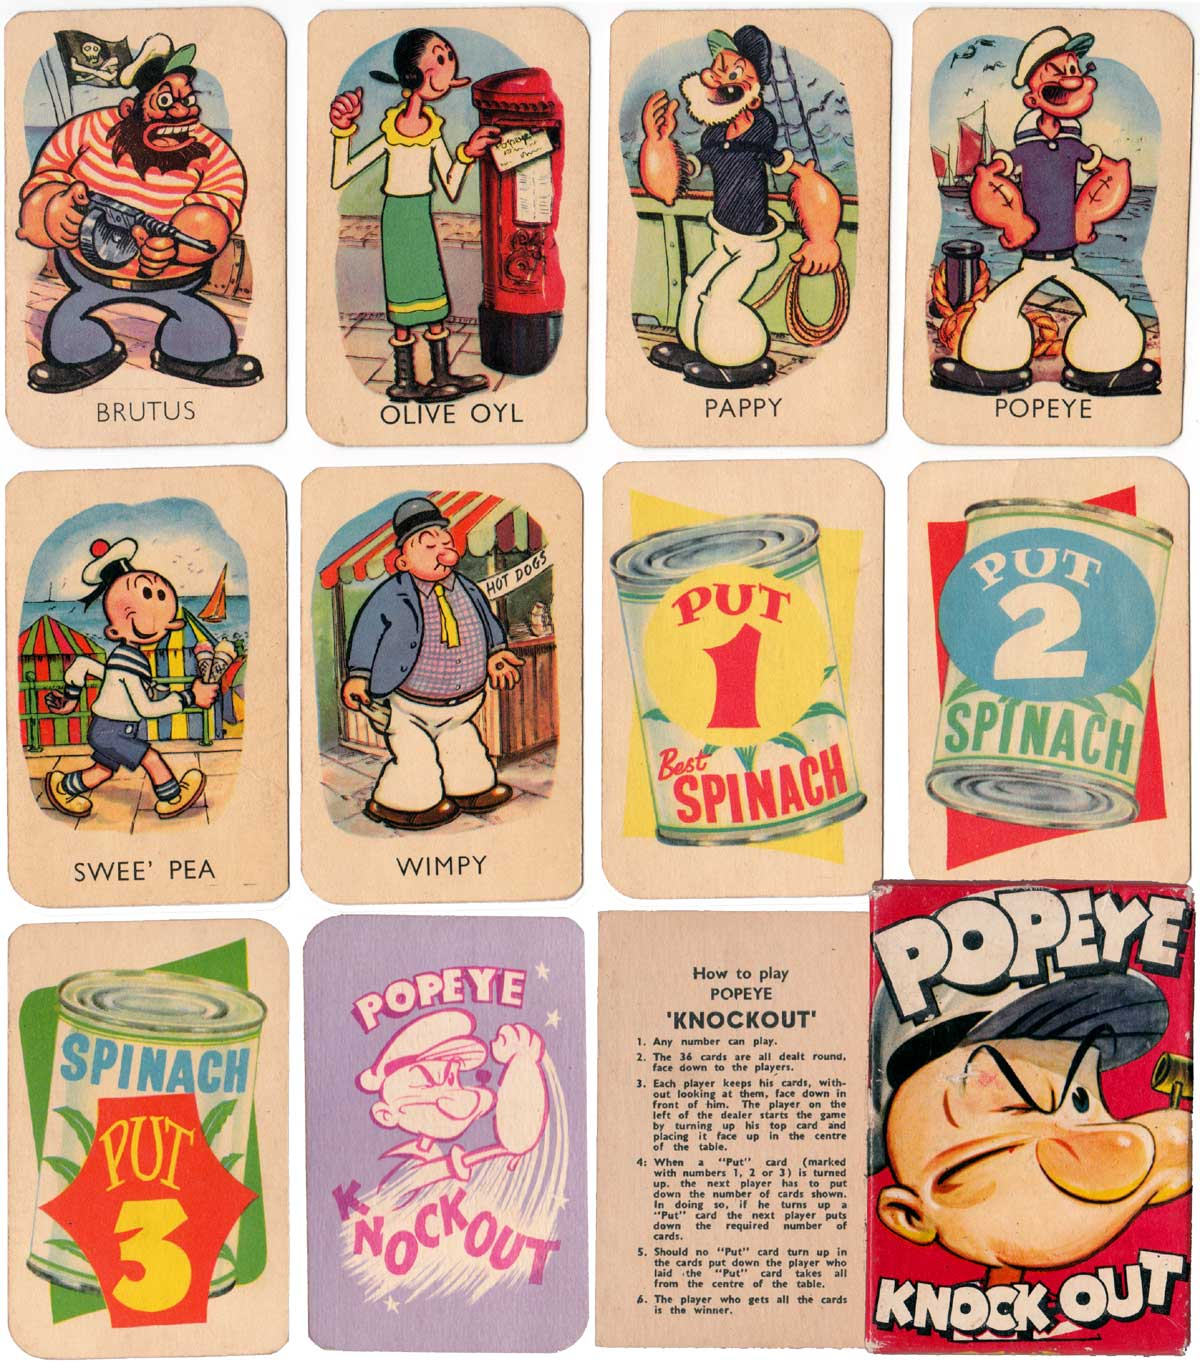 Popeye Knockout No.6586 by Tower Press, c.1961